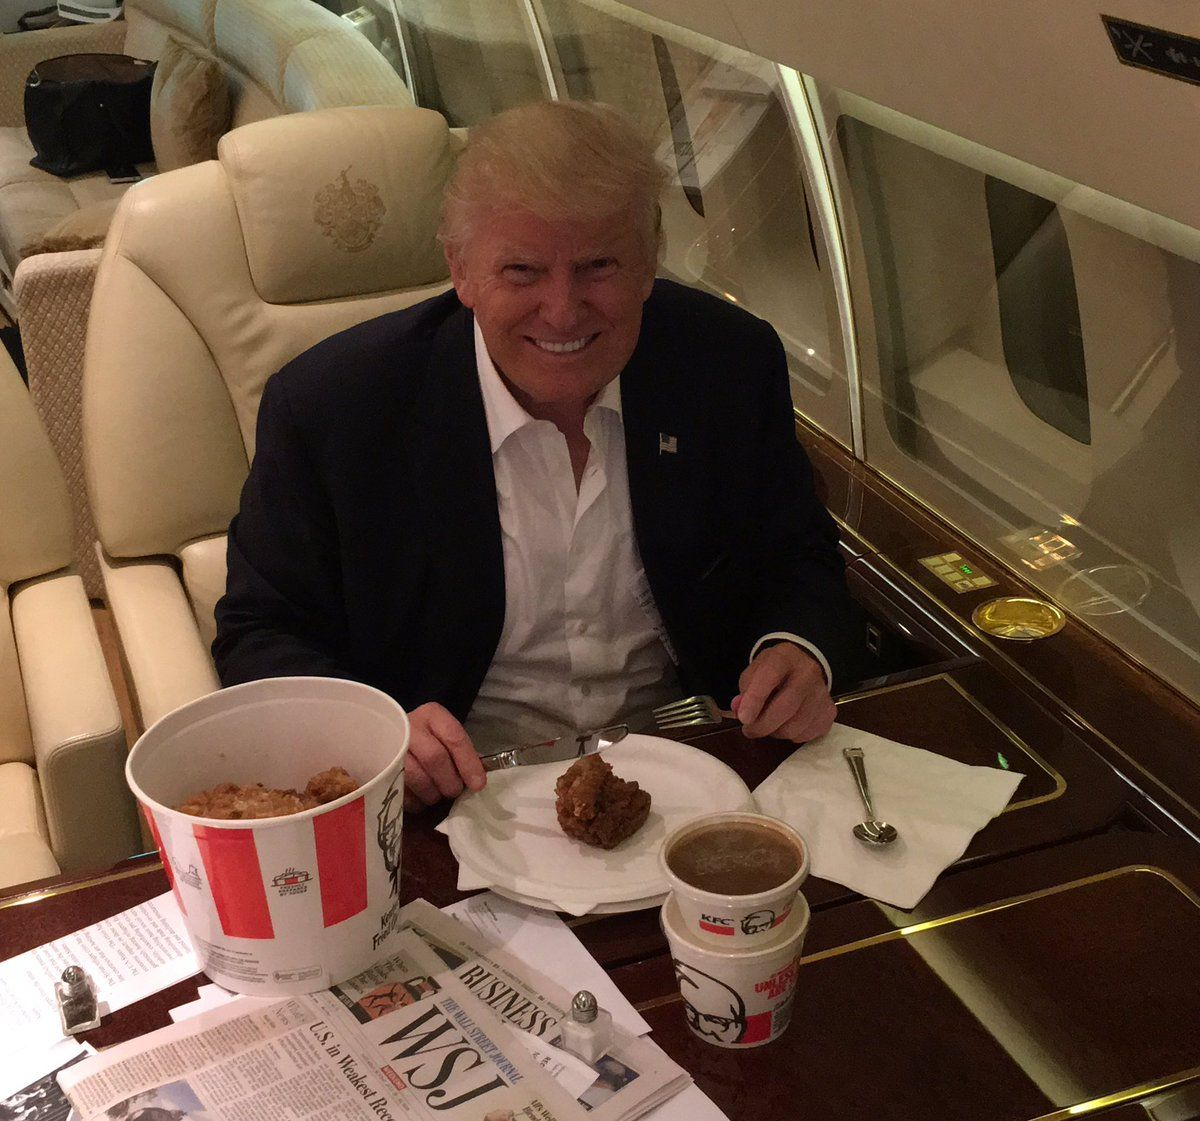 Donald Trump eating KFC